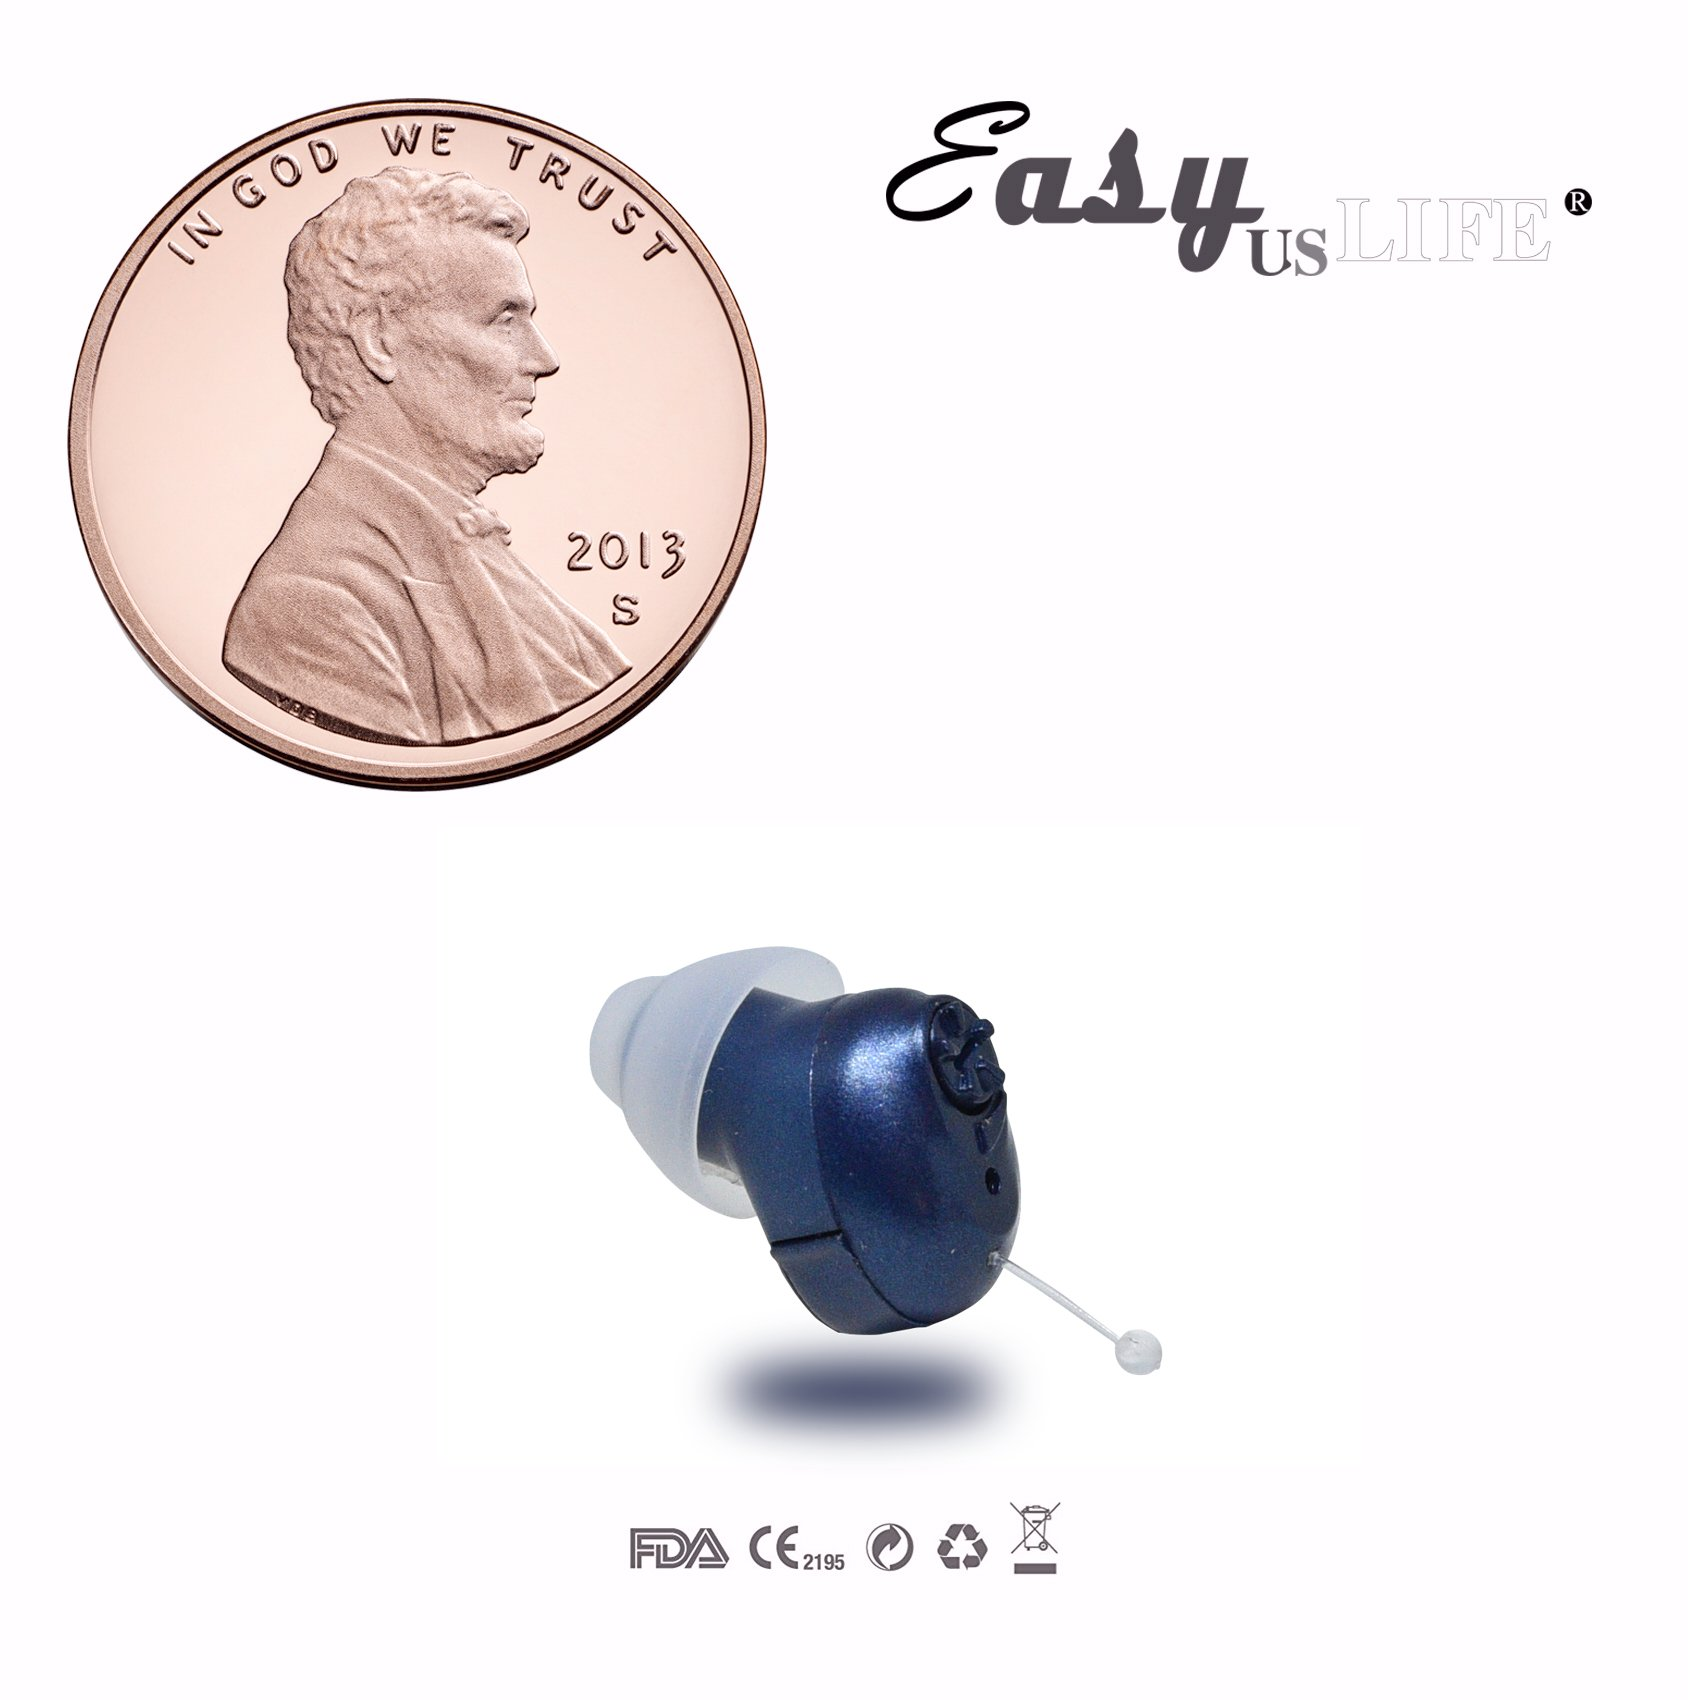 Super Mini ,Dark Blue ,In-The-Canal (ITC) , New Digital Hearing Amplifier , Clearly Technology, Interchangeable , Suitable For Men and Women, Trademark: Easyuslife